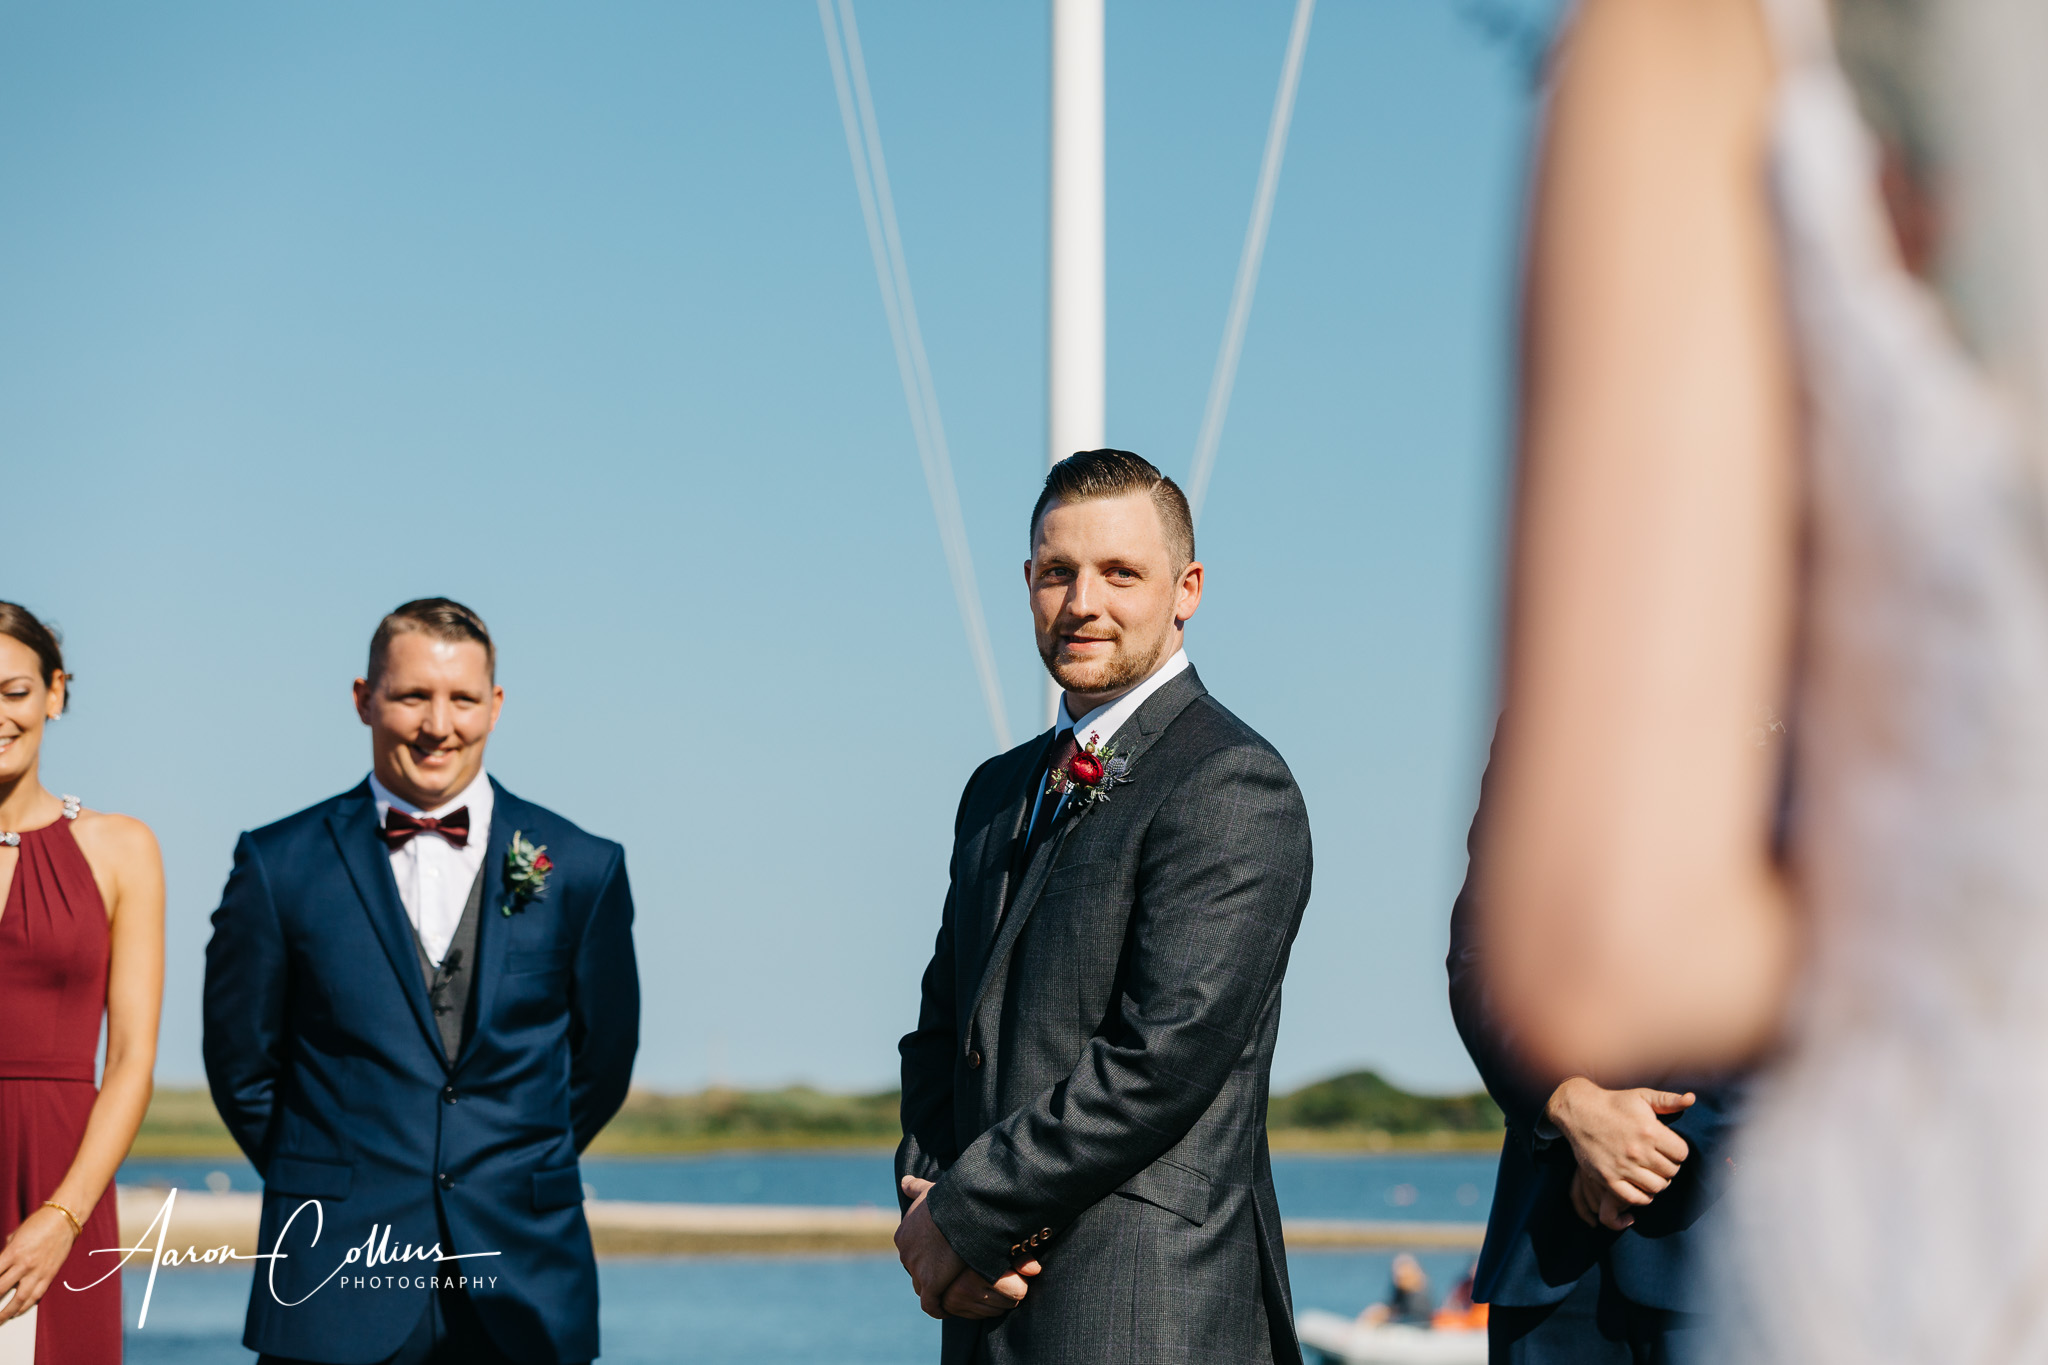 The groom sees his bride for the first time at their Block Island wedding.